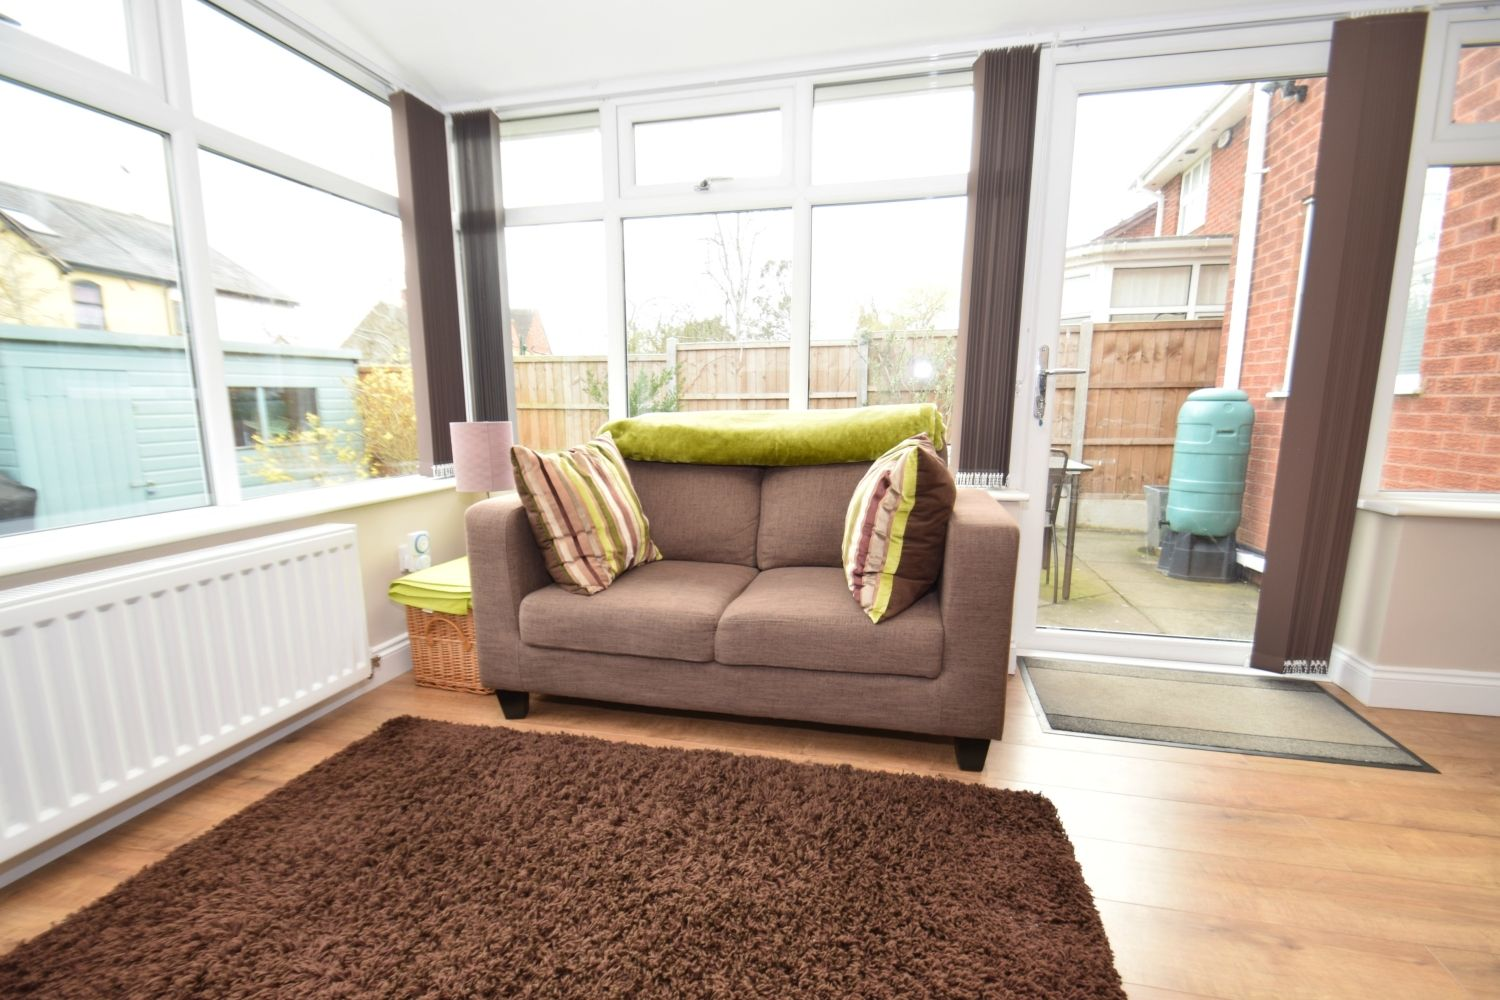 3 bed detached for sale in Foxes Close, Blackwell, B60  - Property Image 9